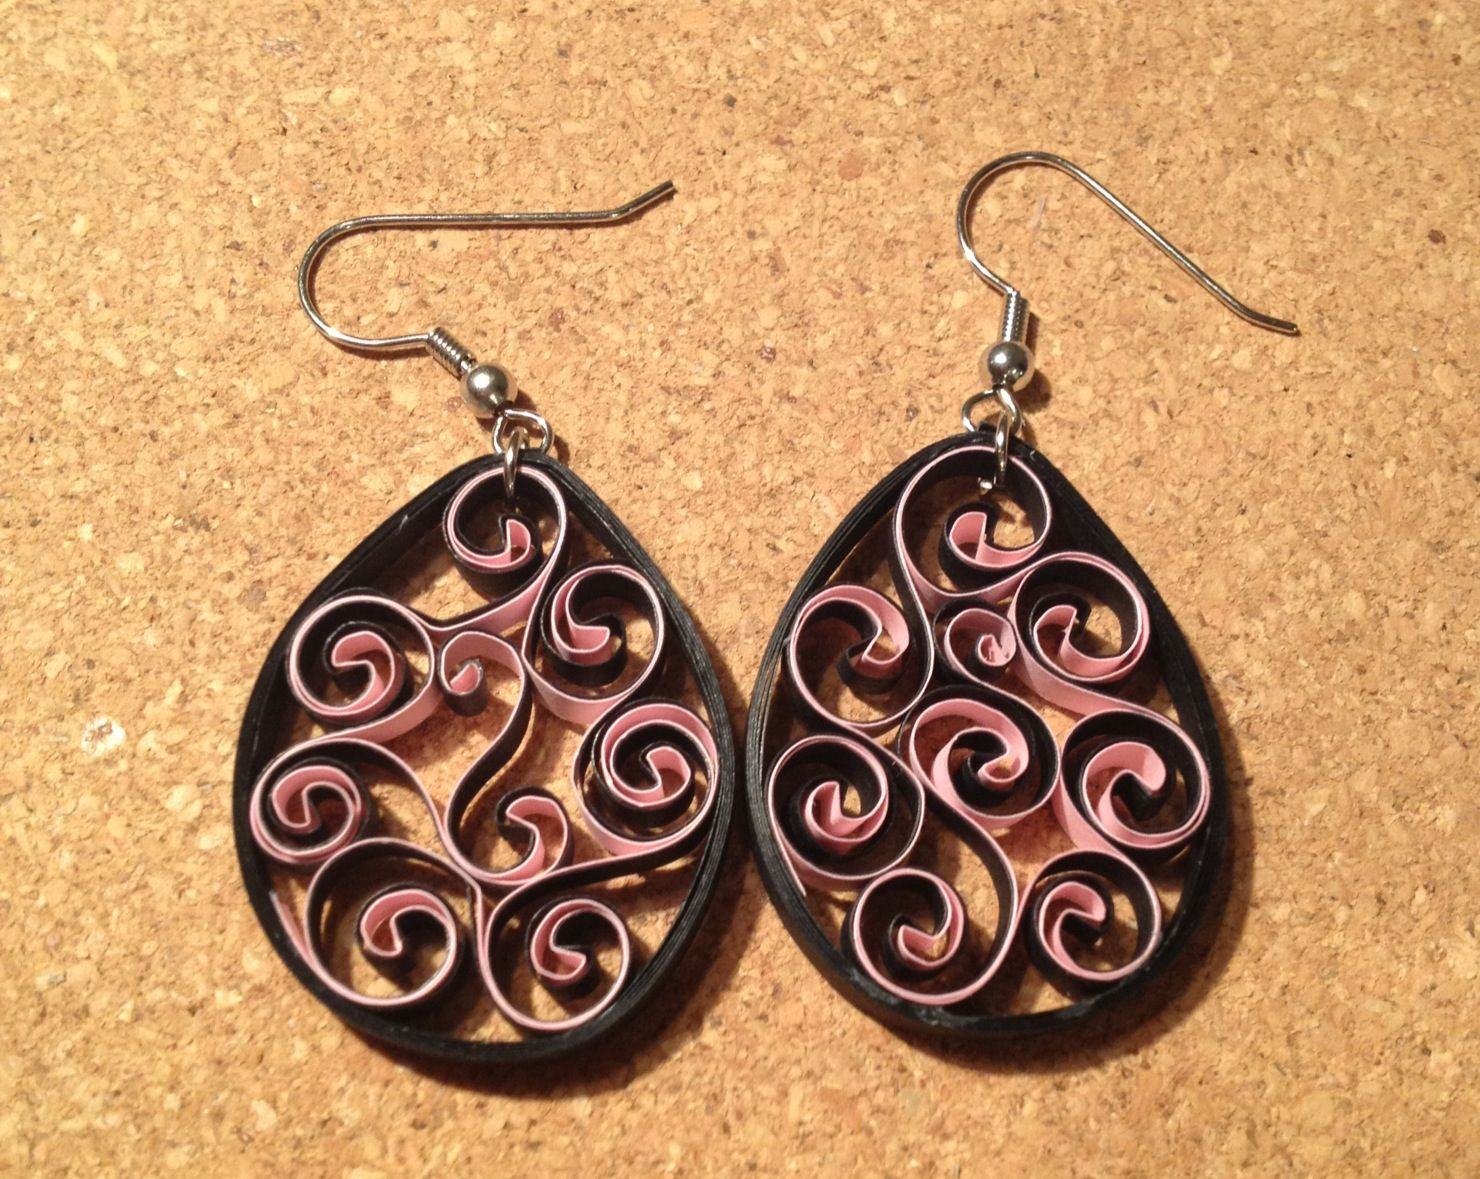 Quilling Earrings Designs Images : Black/pink quilled earrings Quilling Pinterest